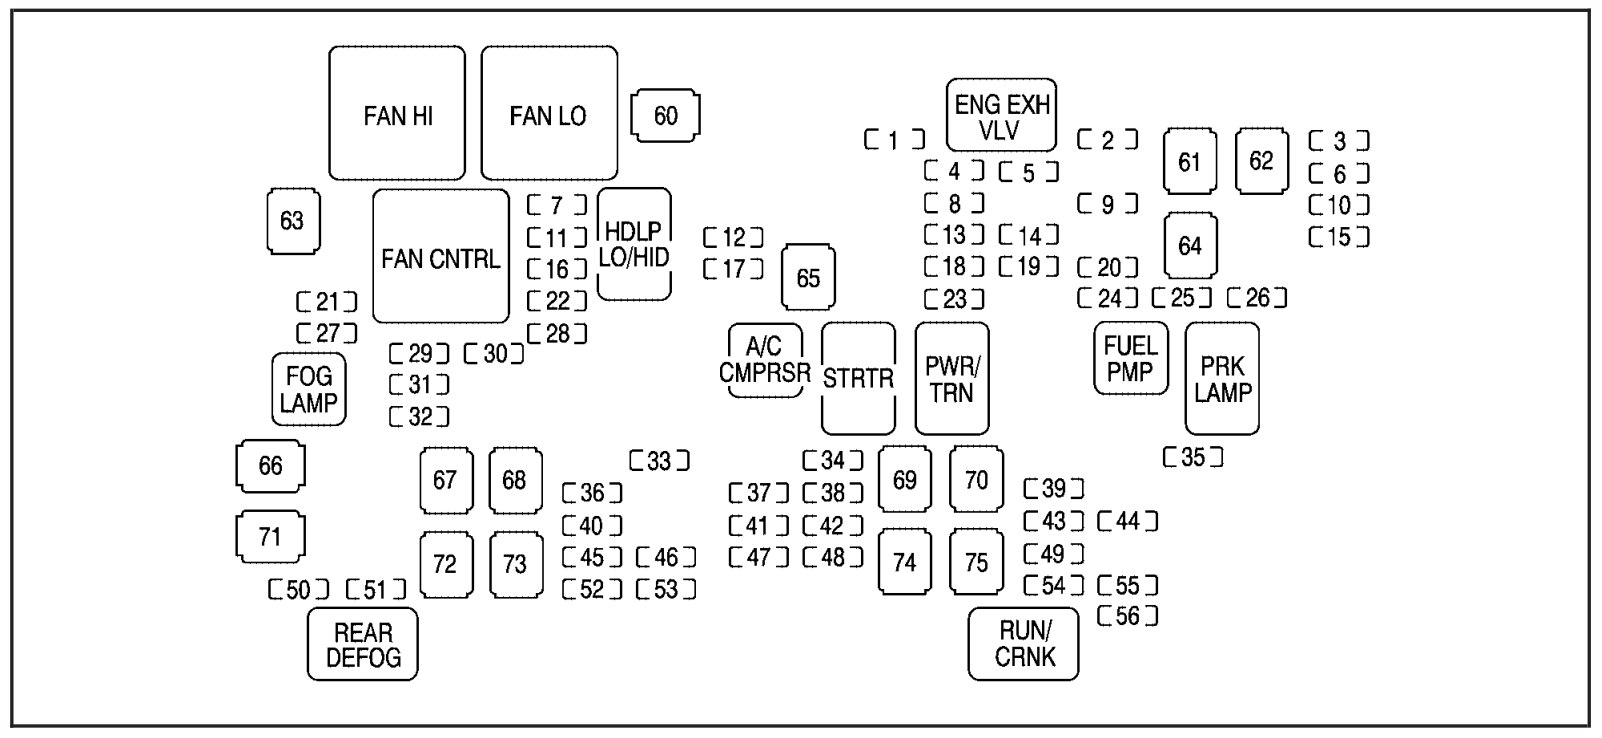 2007 Chevy Suburban Fuse Diagram Trusted Wiring 2001 Tahoe Box Ltz Electrical U2022 2004 Interior Parts